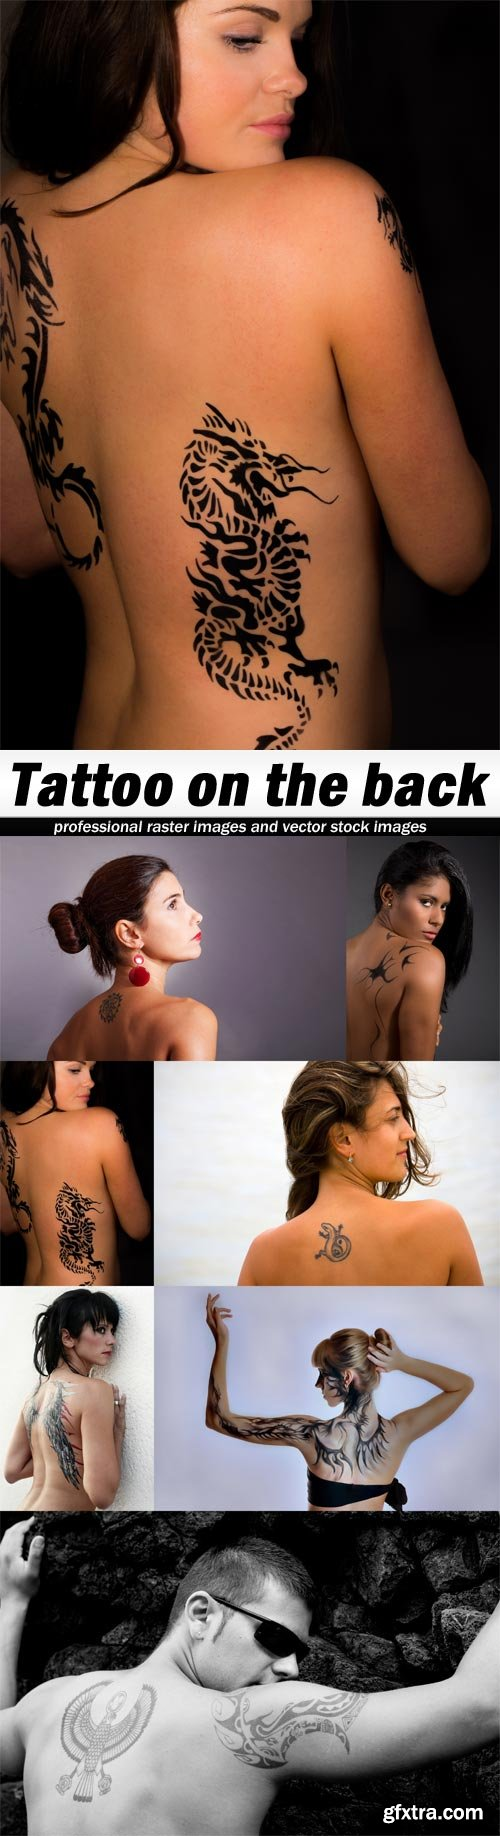 Tattoo on the back